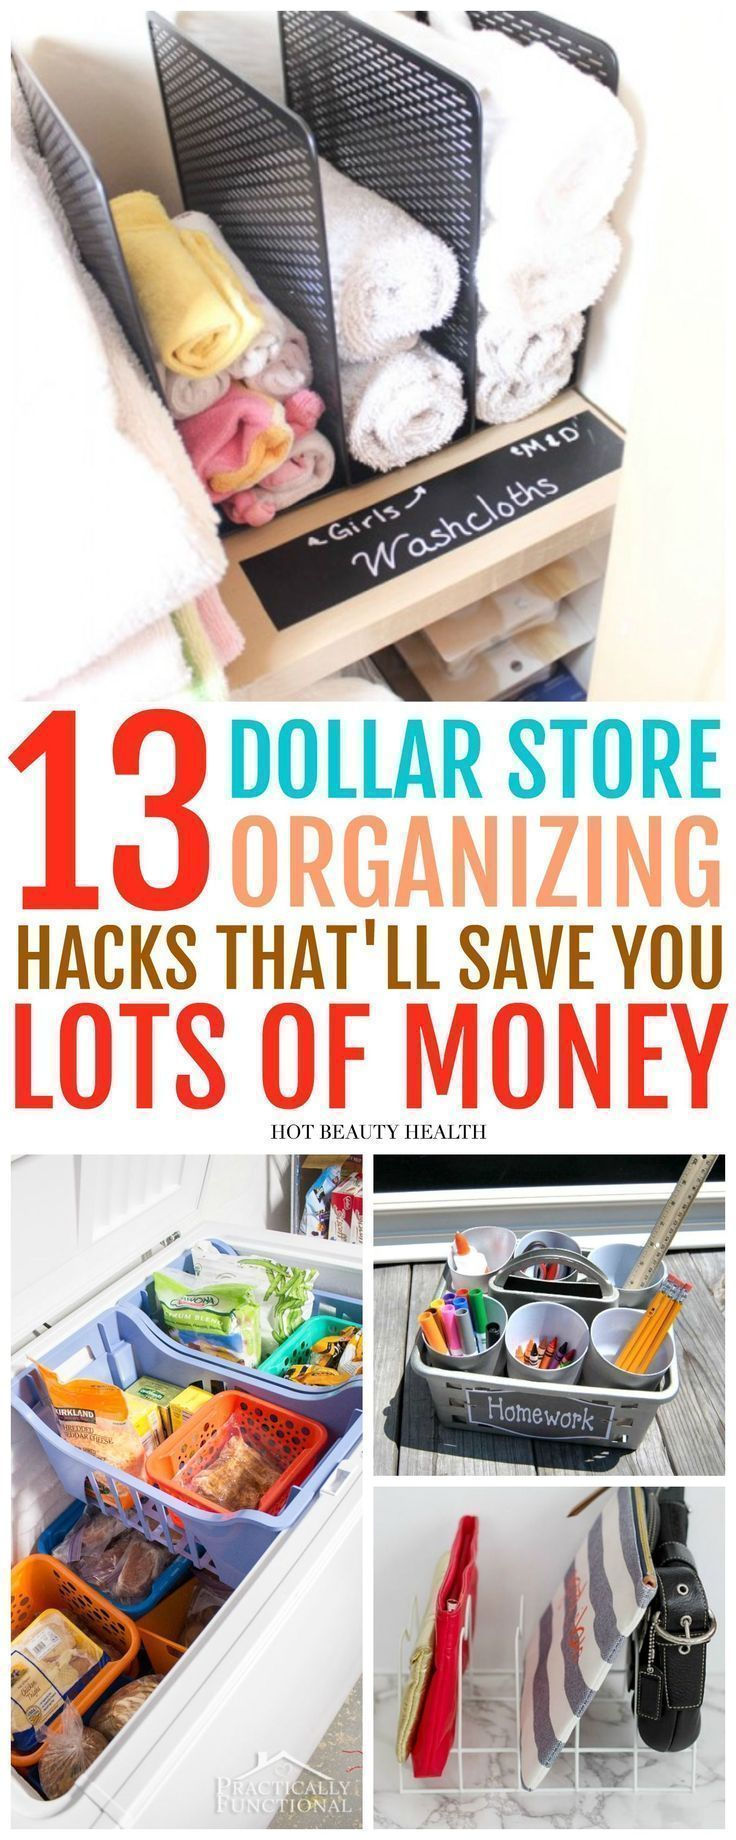 13 Creative Dollar Store Organizing Hacks You'll Love images